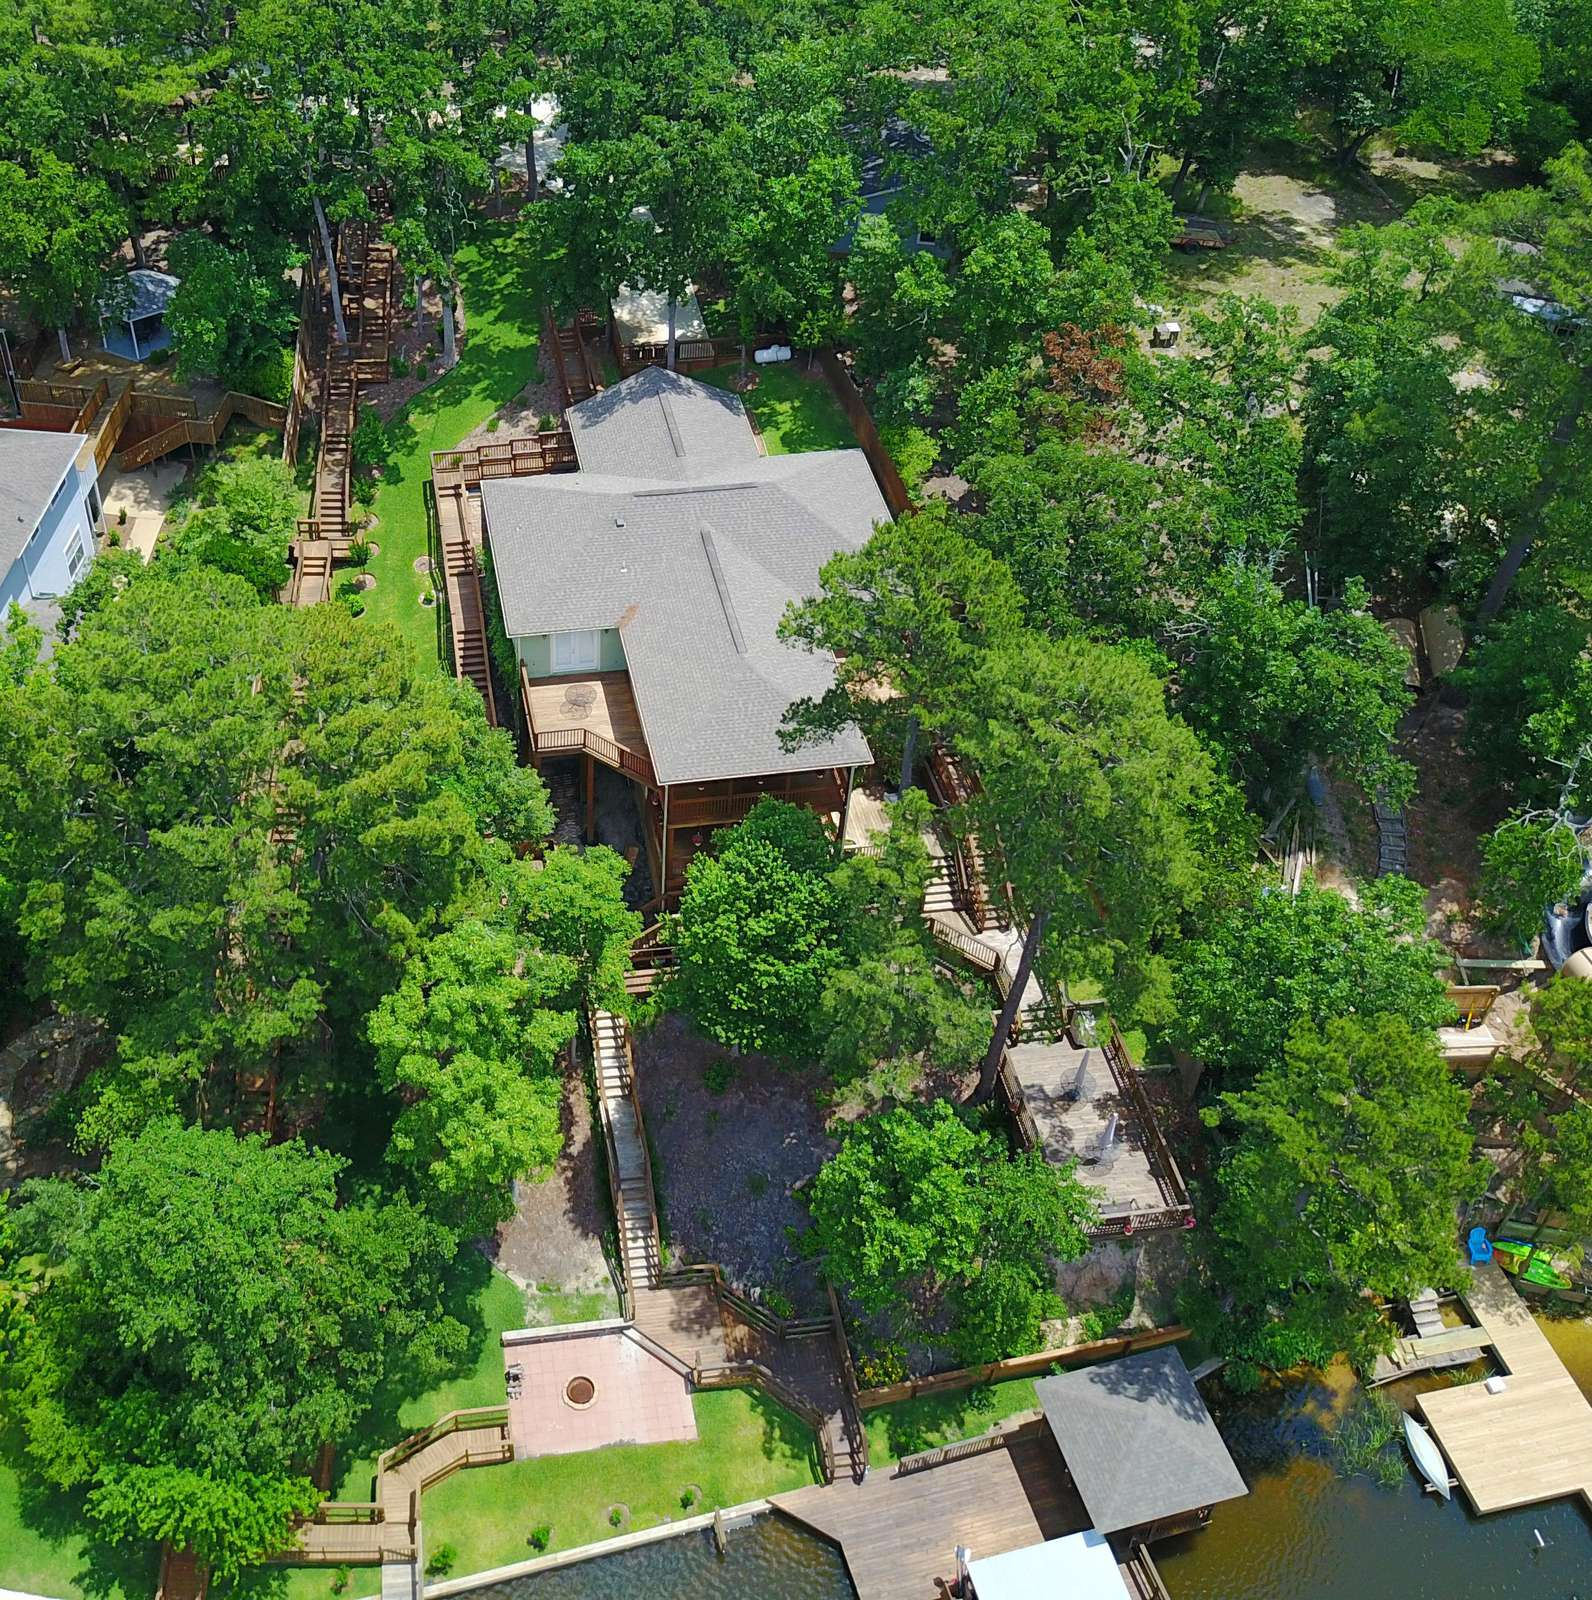 A drone shot of Pat's Place showing the layout of decking,